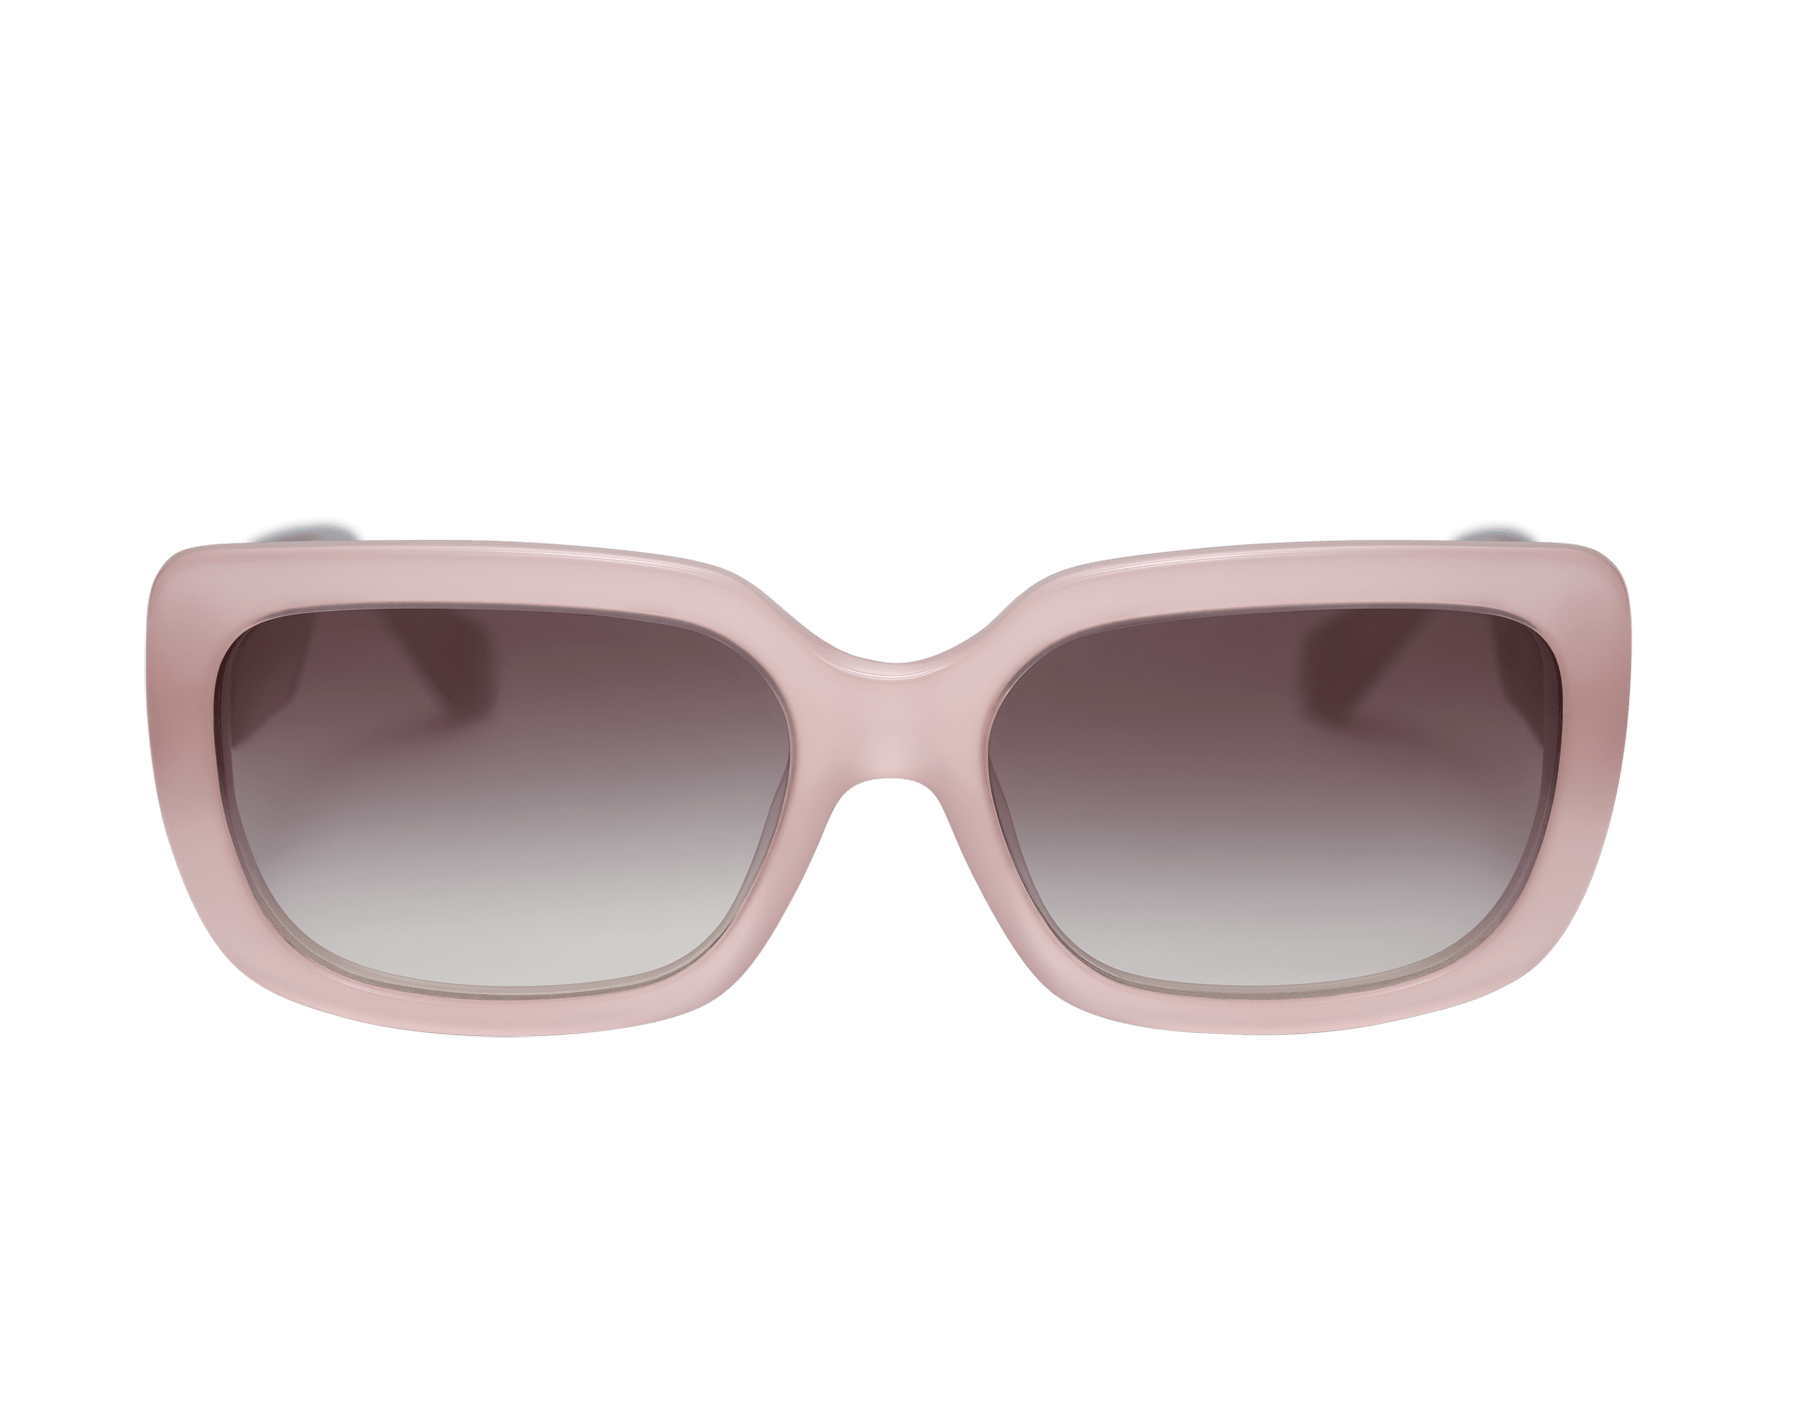 Bulgari Serpenti Back-to-scale rectangular acetate sunglasses. 903969 image 2